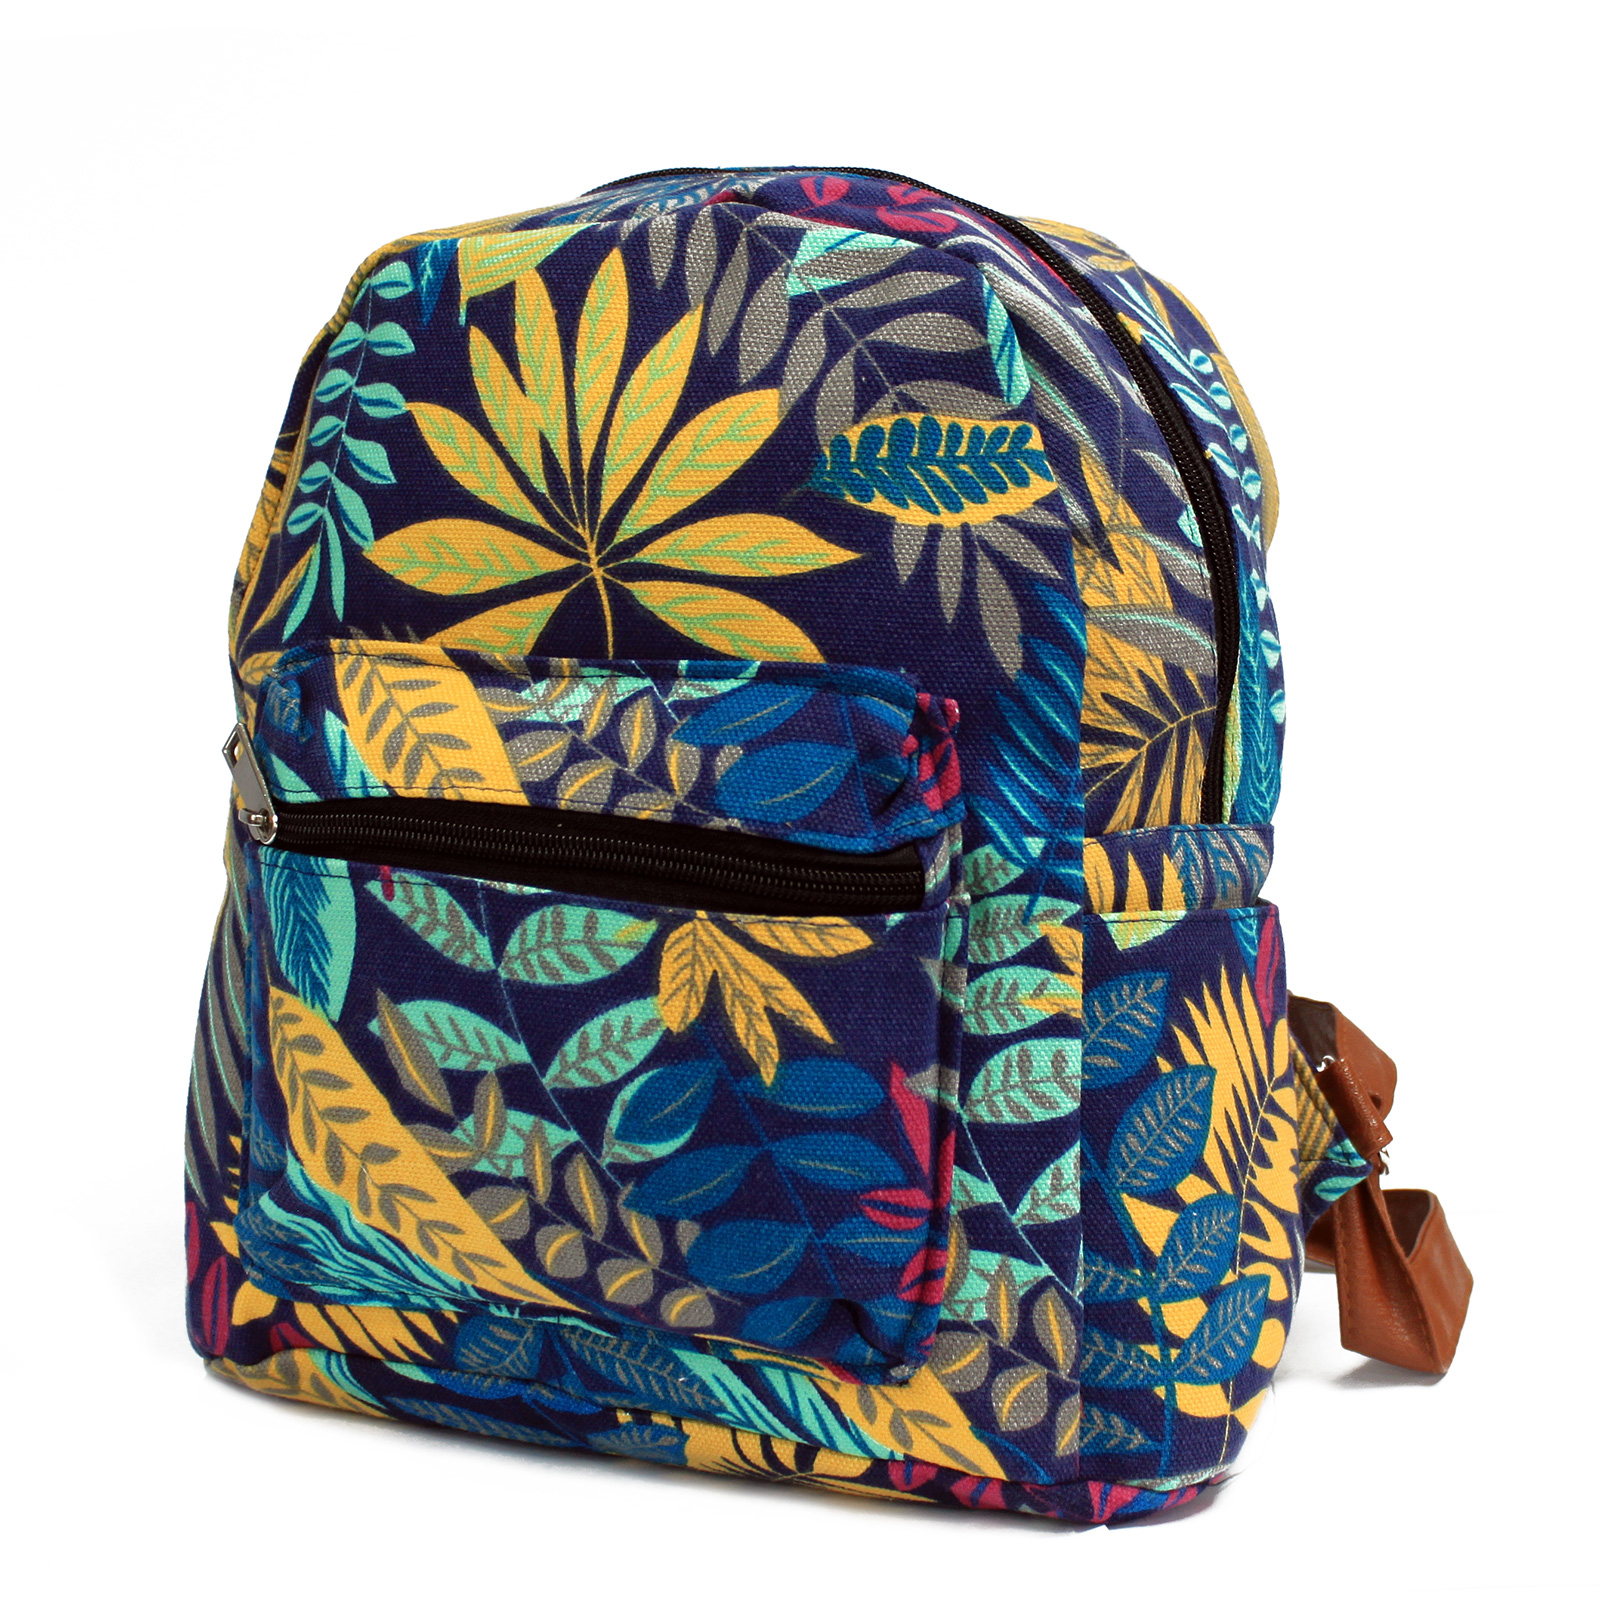 Jungle Bag - Undersized Backpack - Blue / Teal